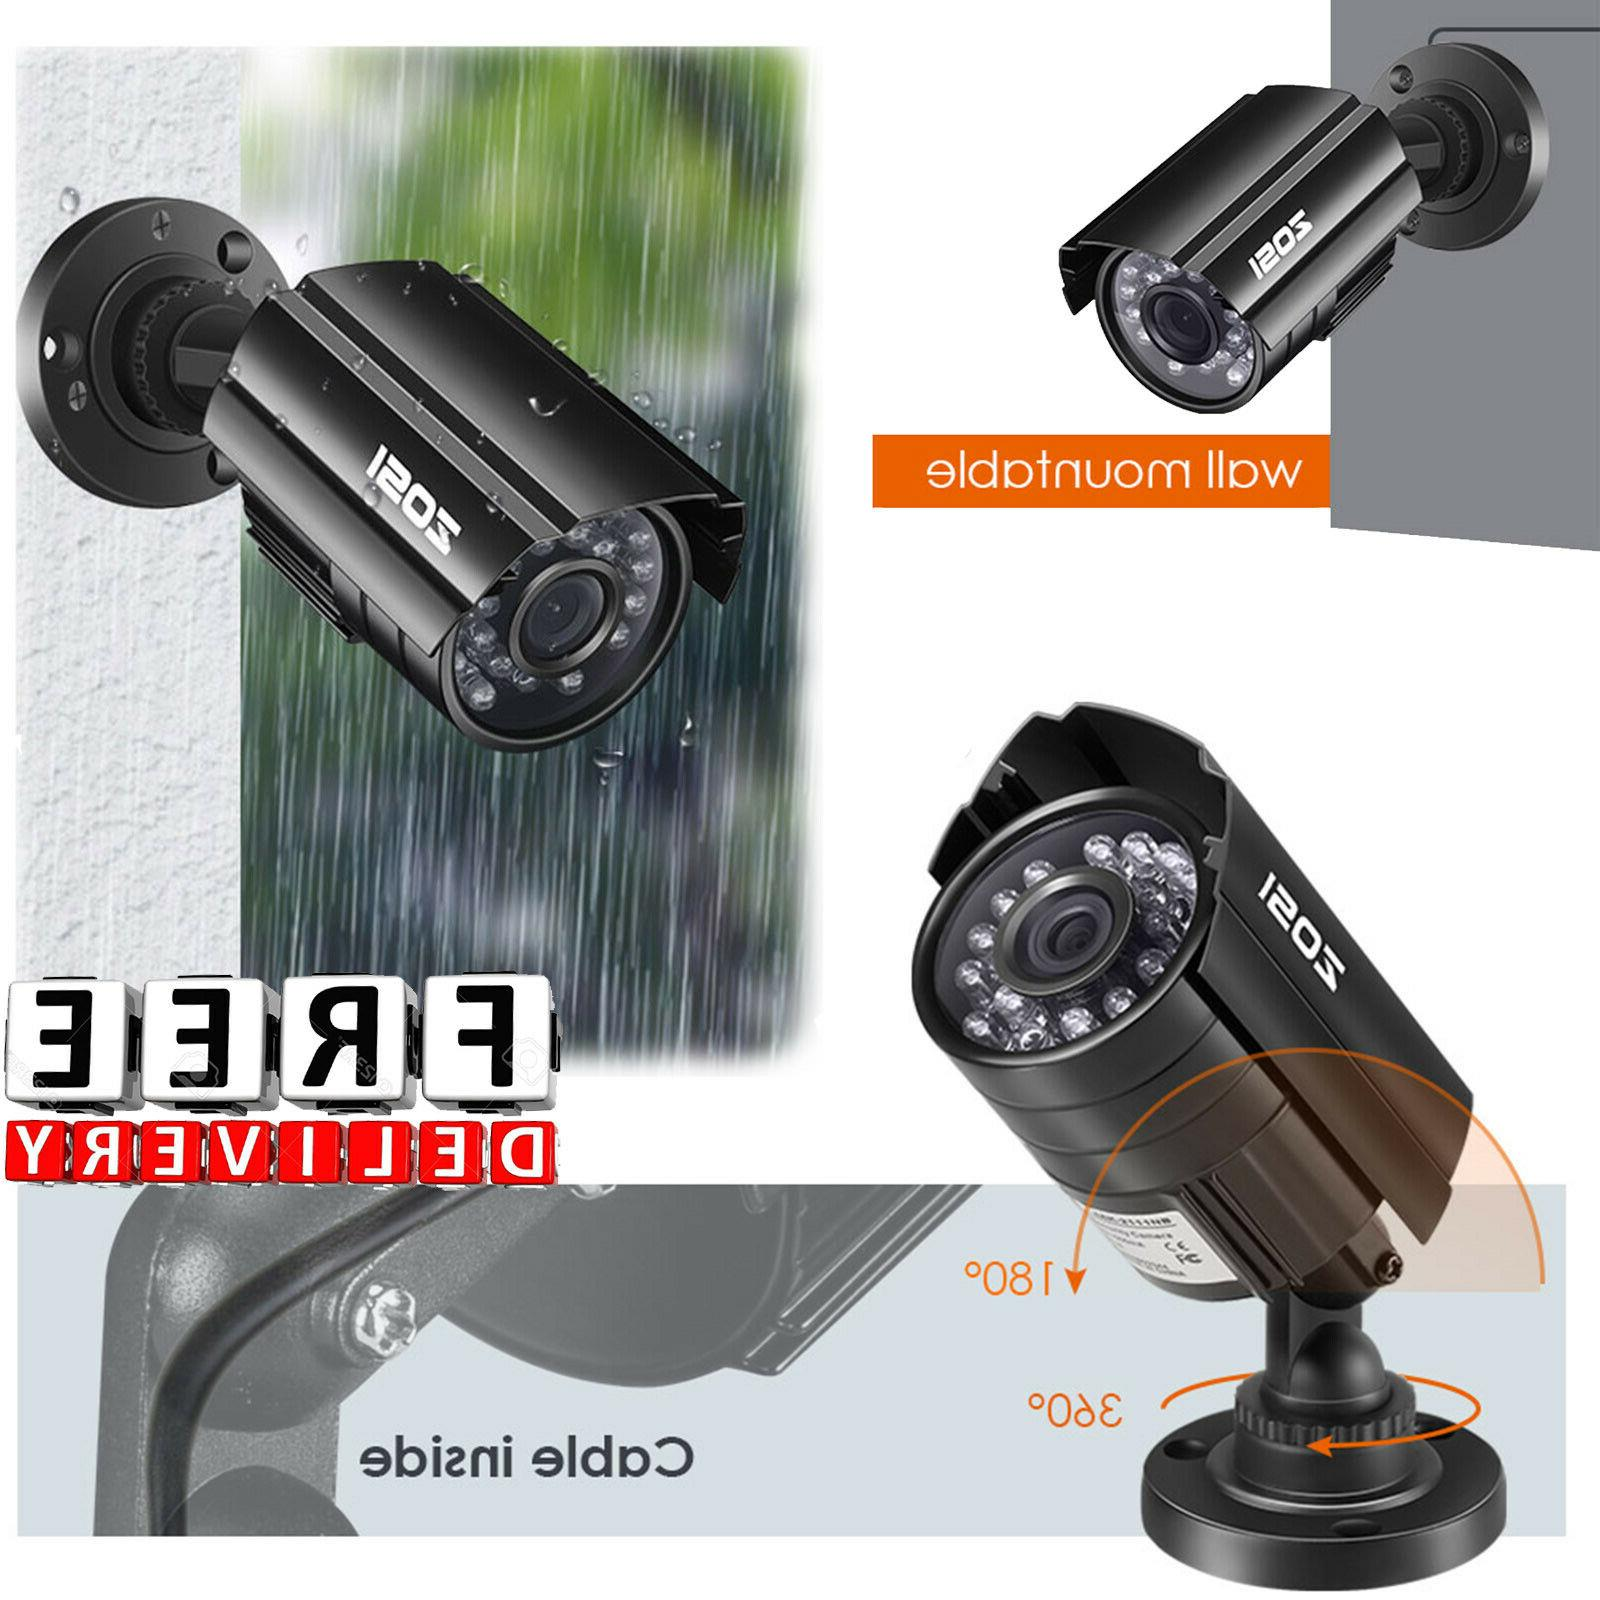 wireless outdoor security camera system 720p video